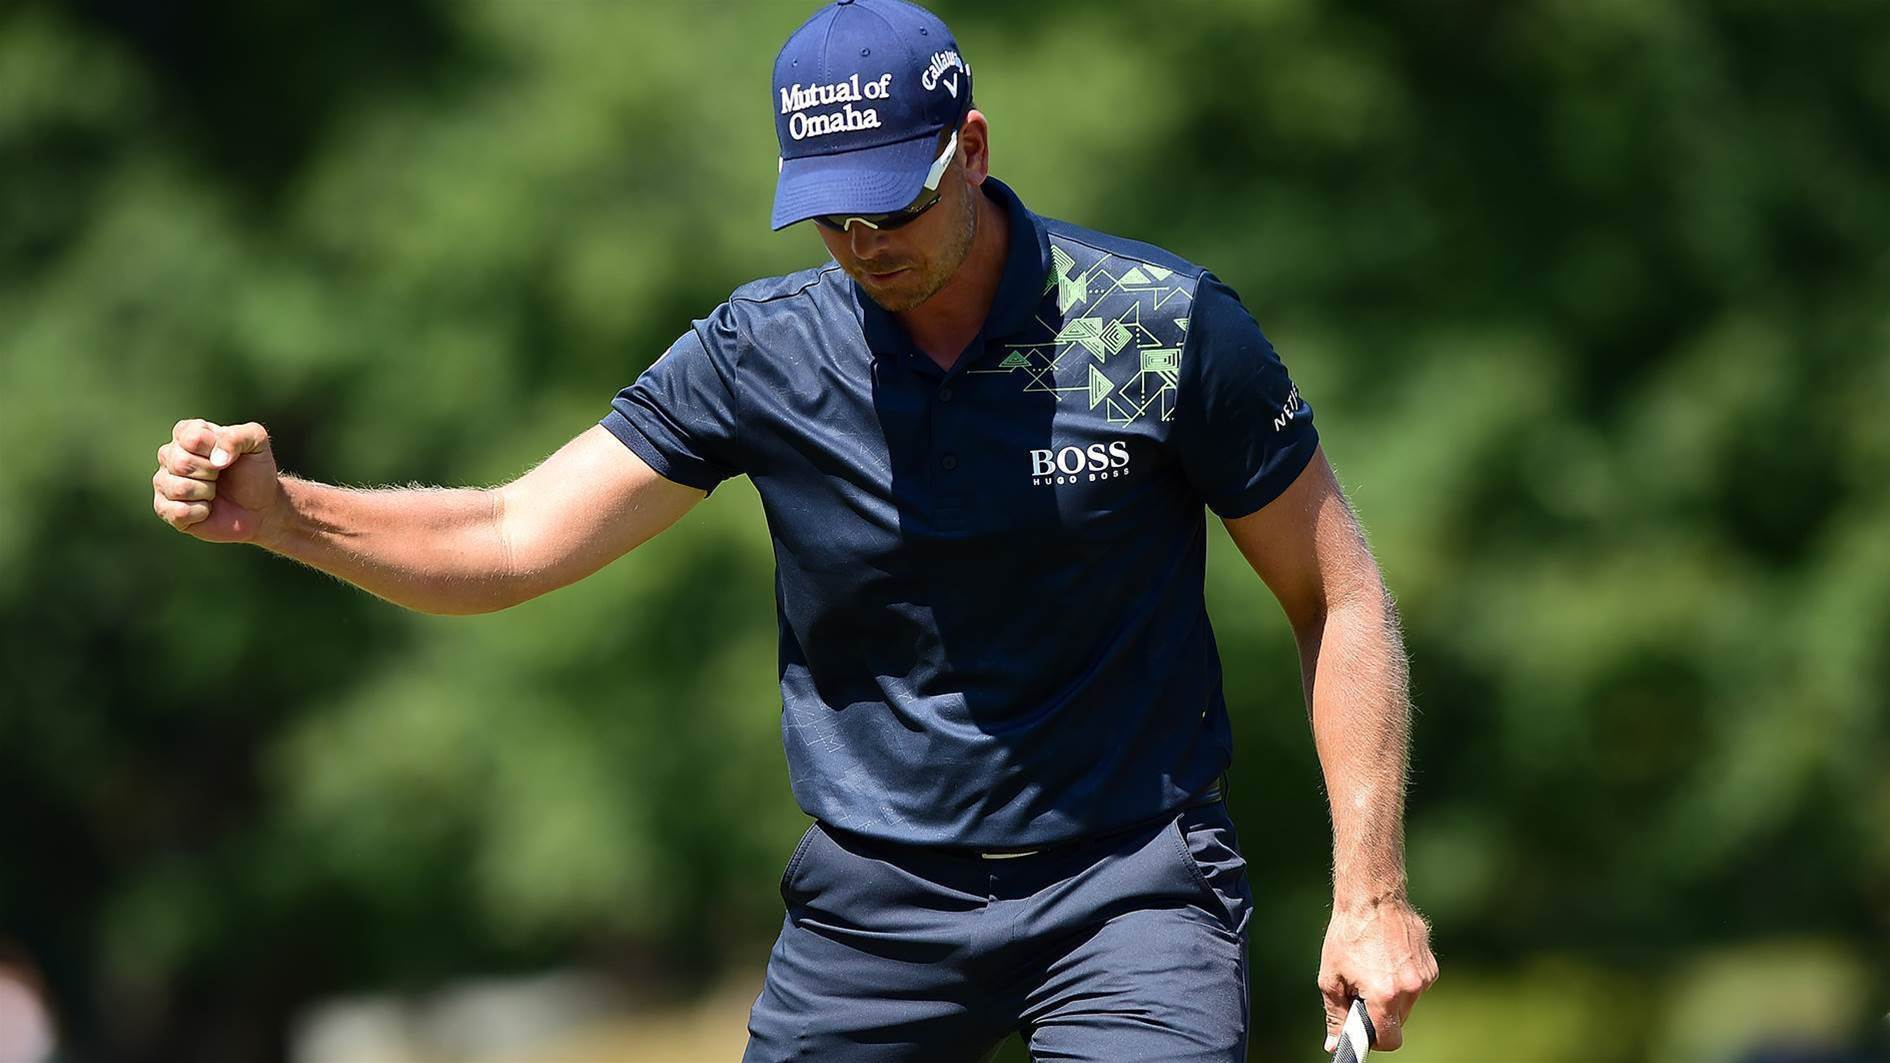 PGA TOUR: Stenson ices victory at Wyndham